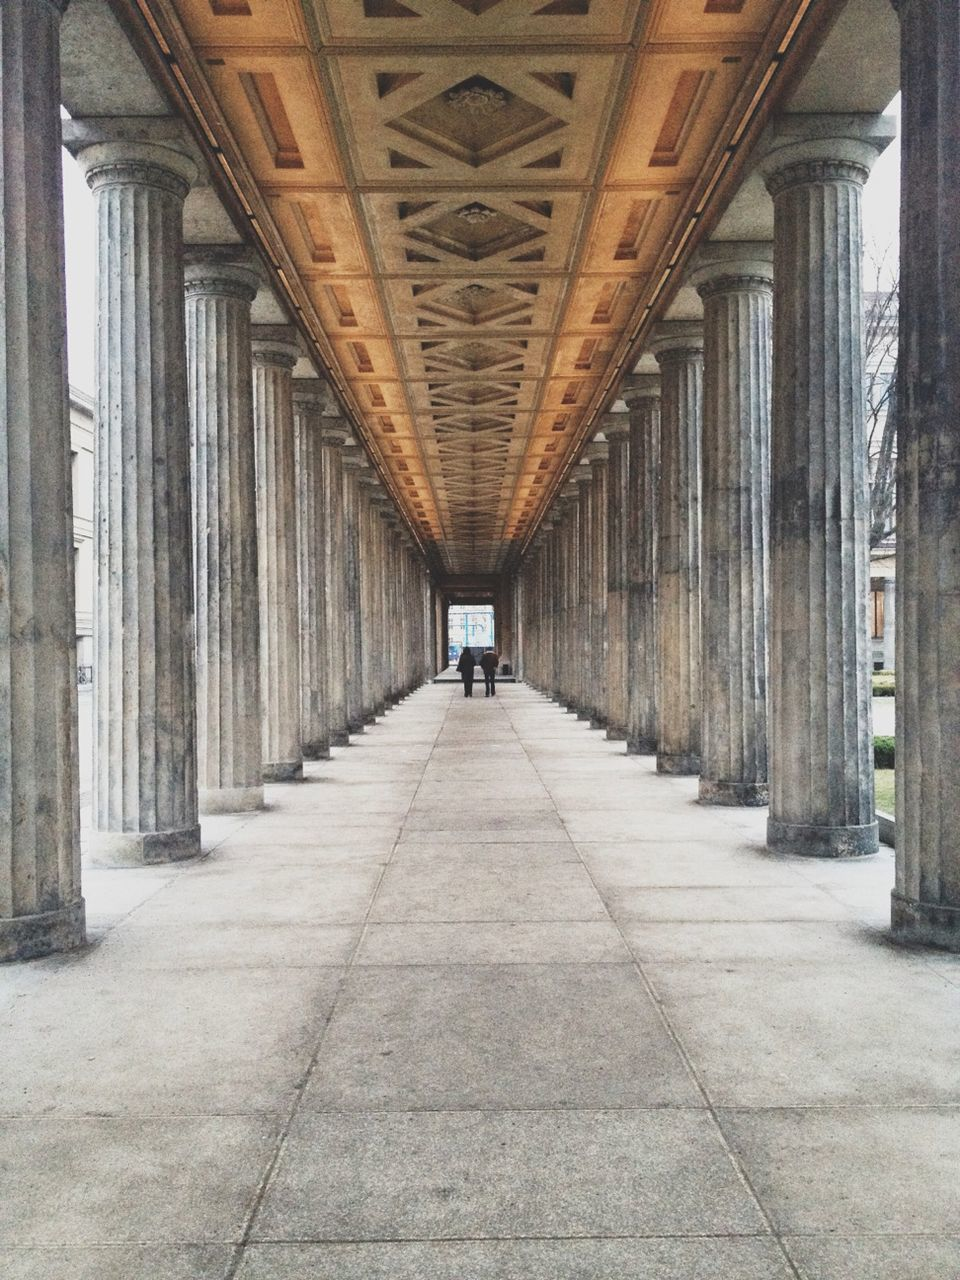 Walkway surrounded by columns